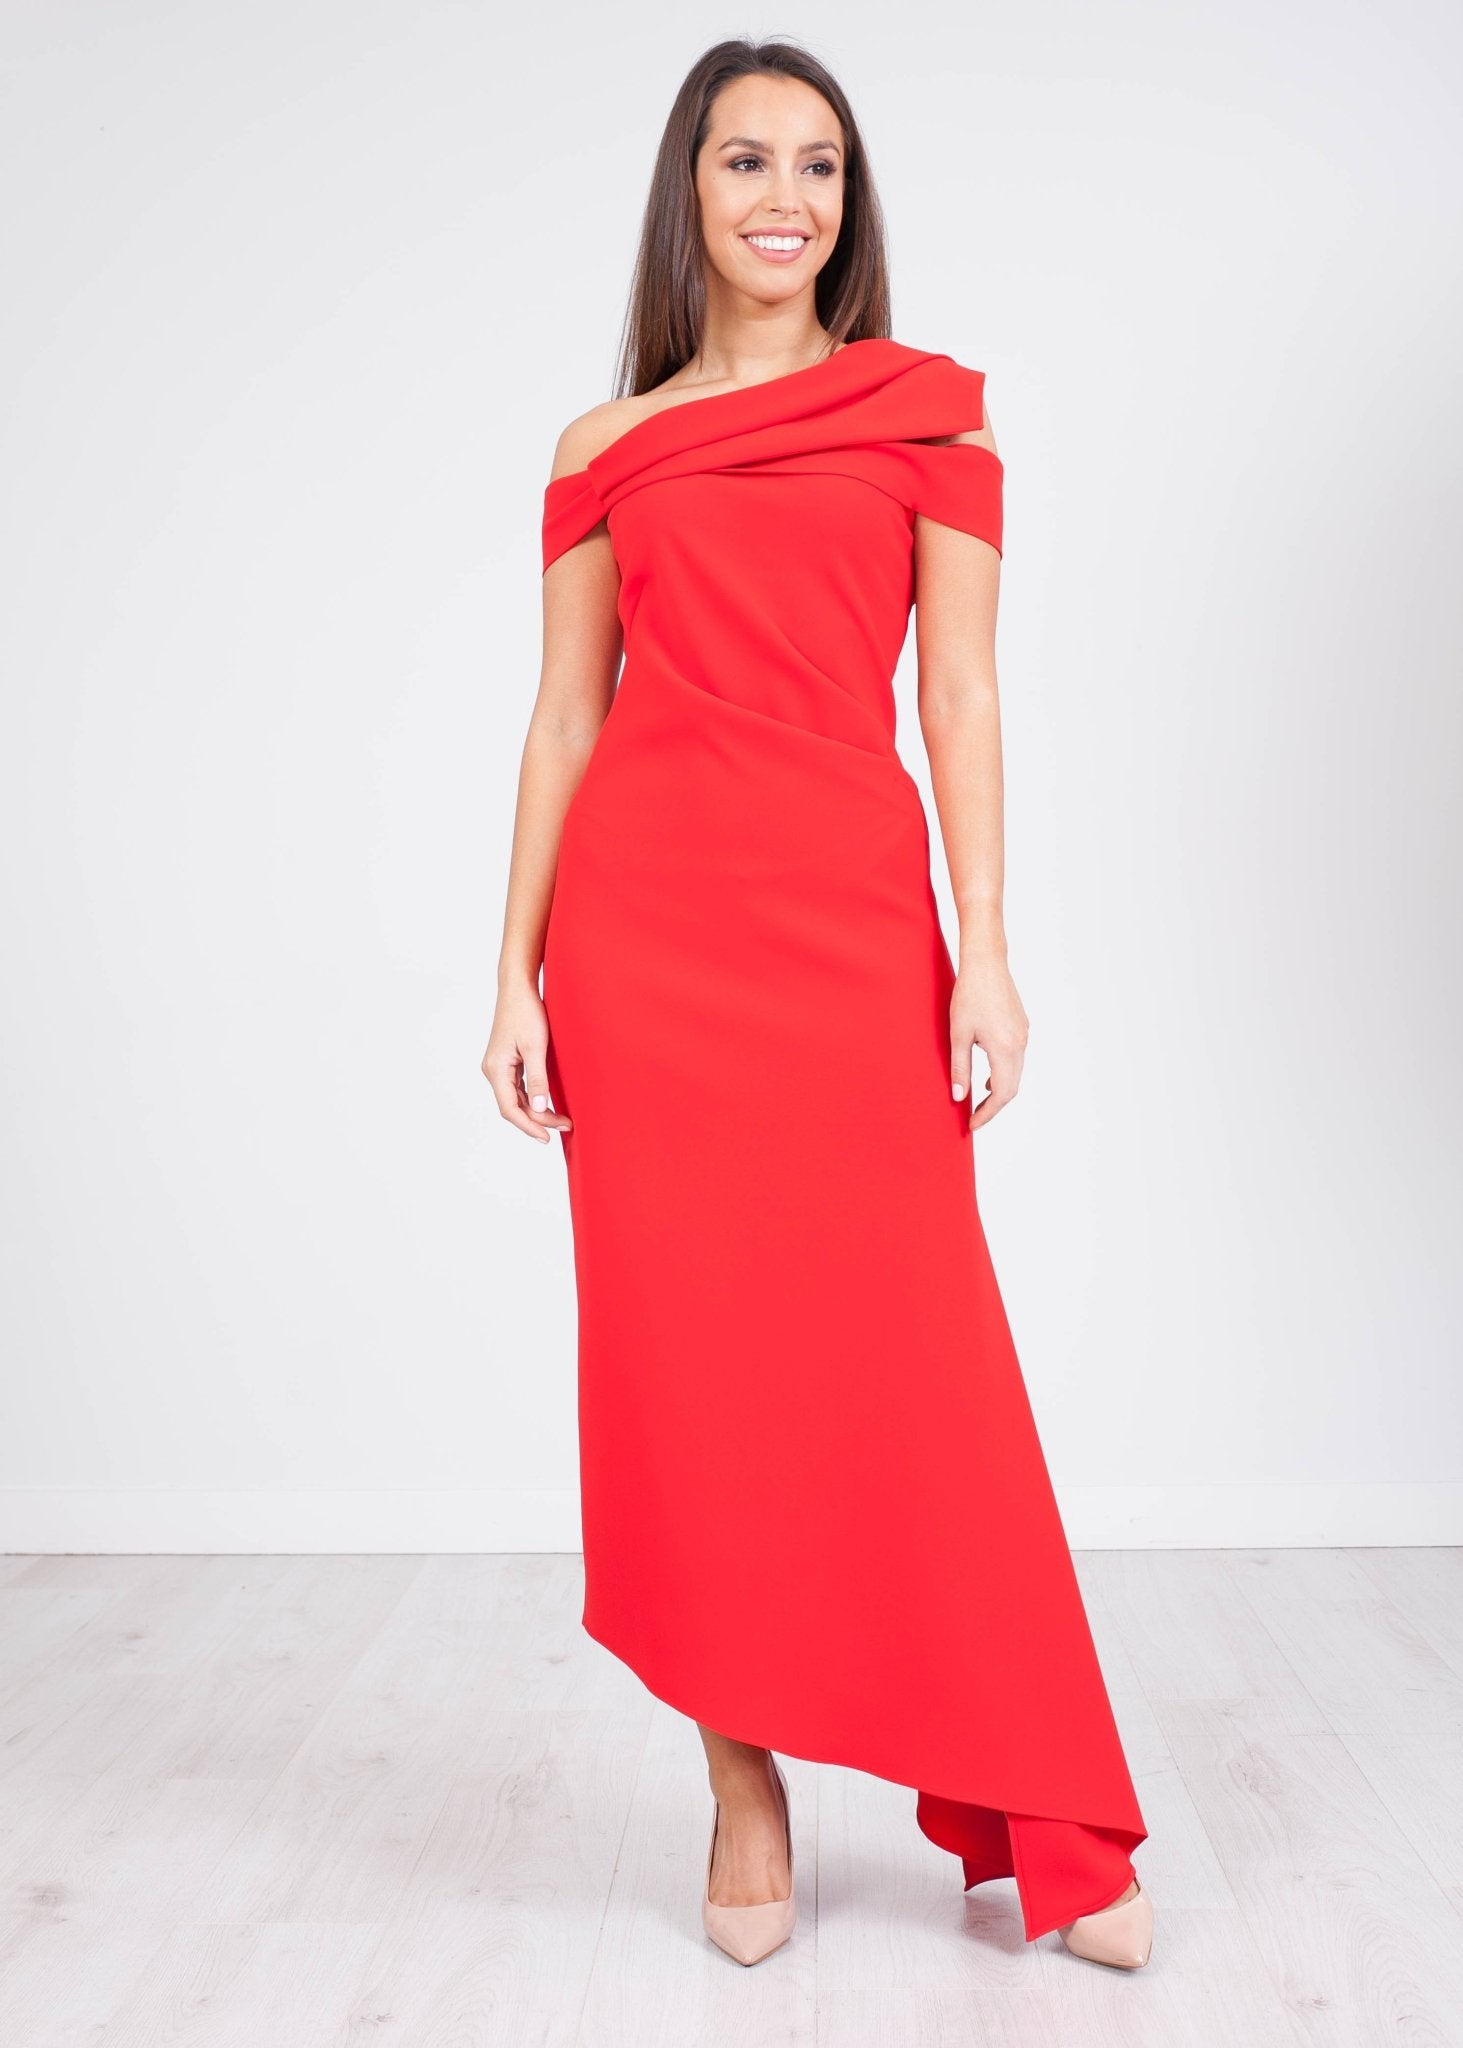 Carla Red Bianca Dress - The Walk in Wardrobe